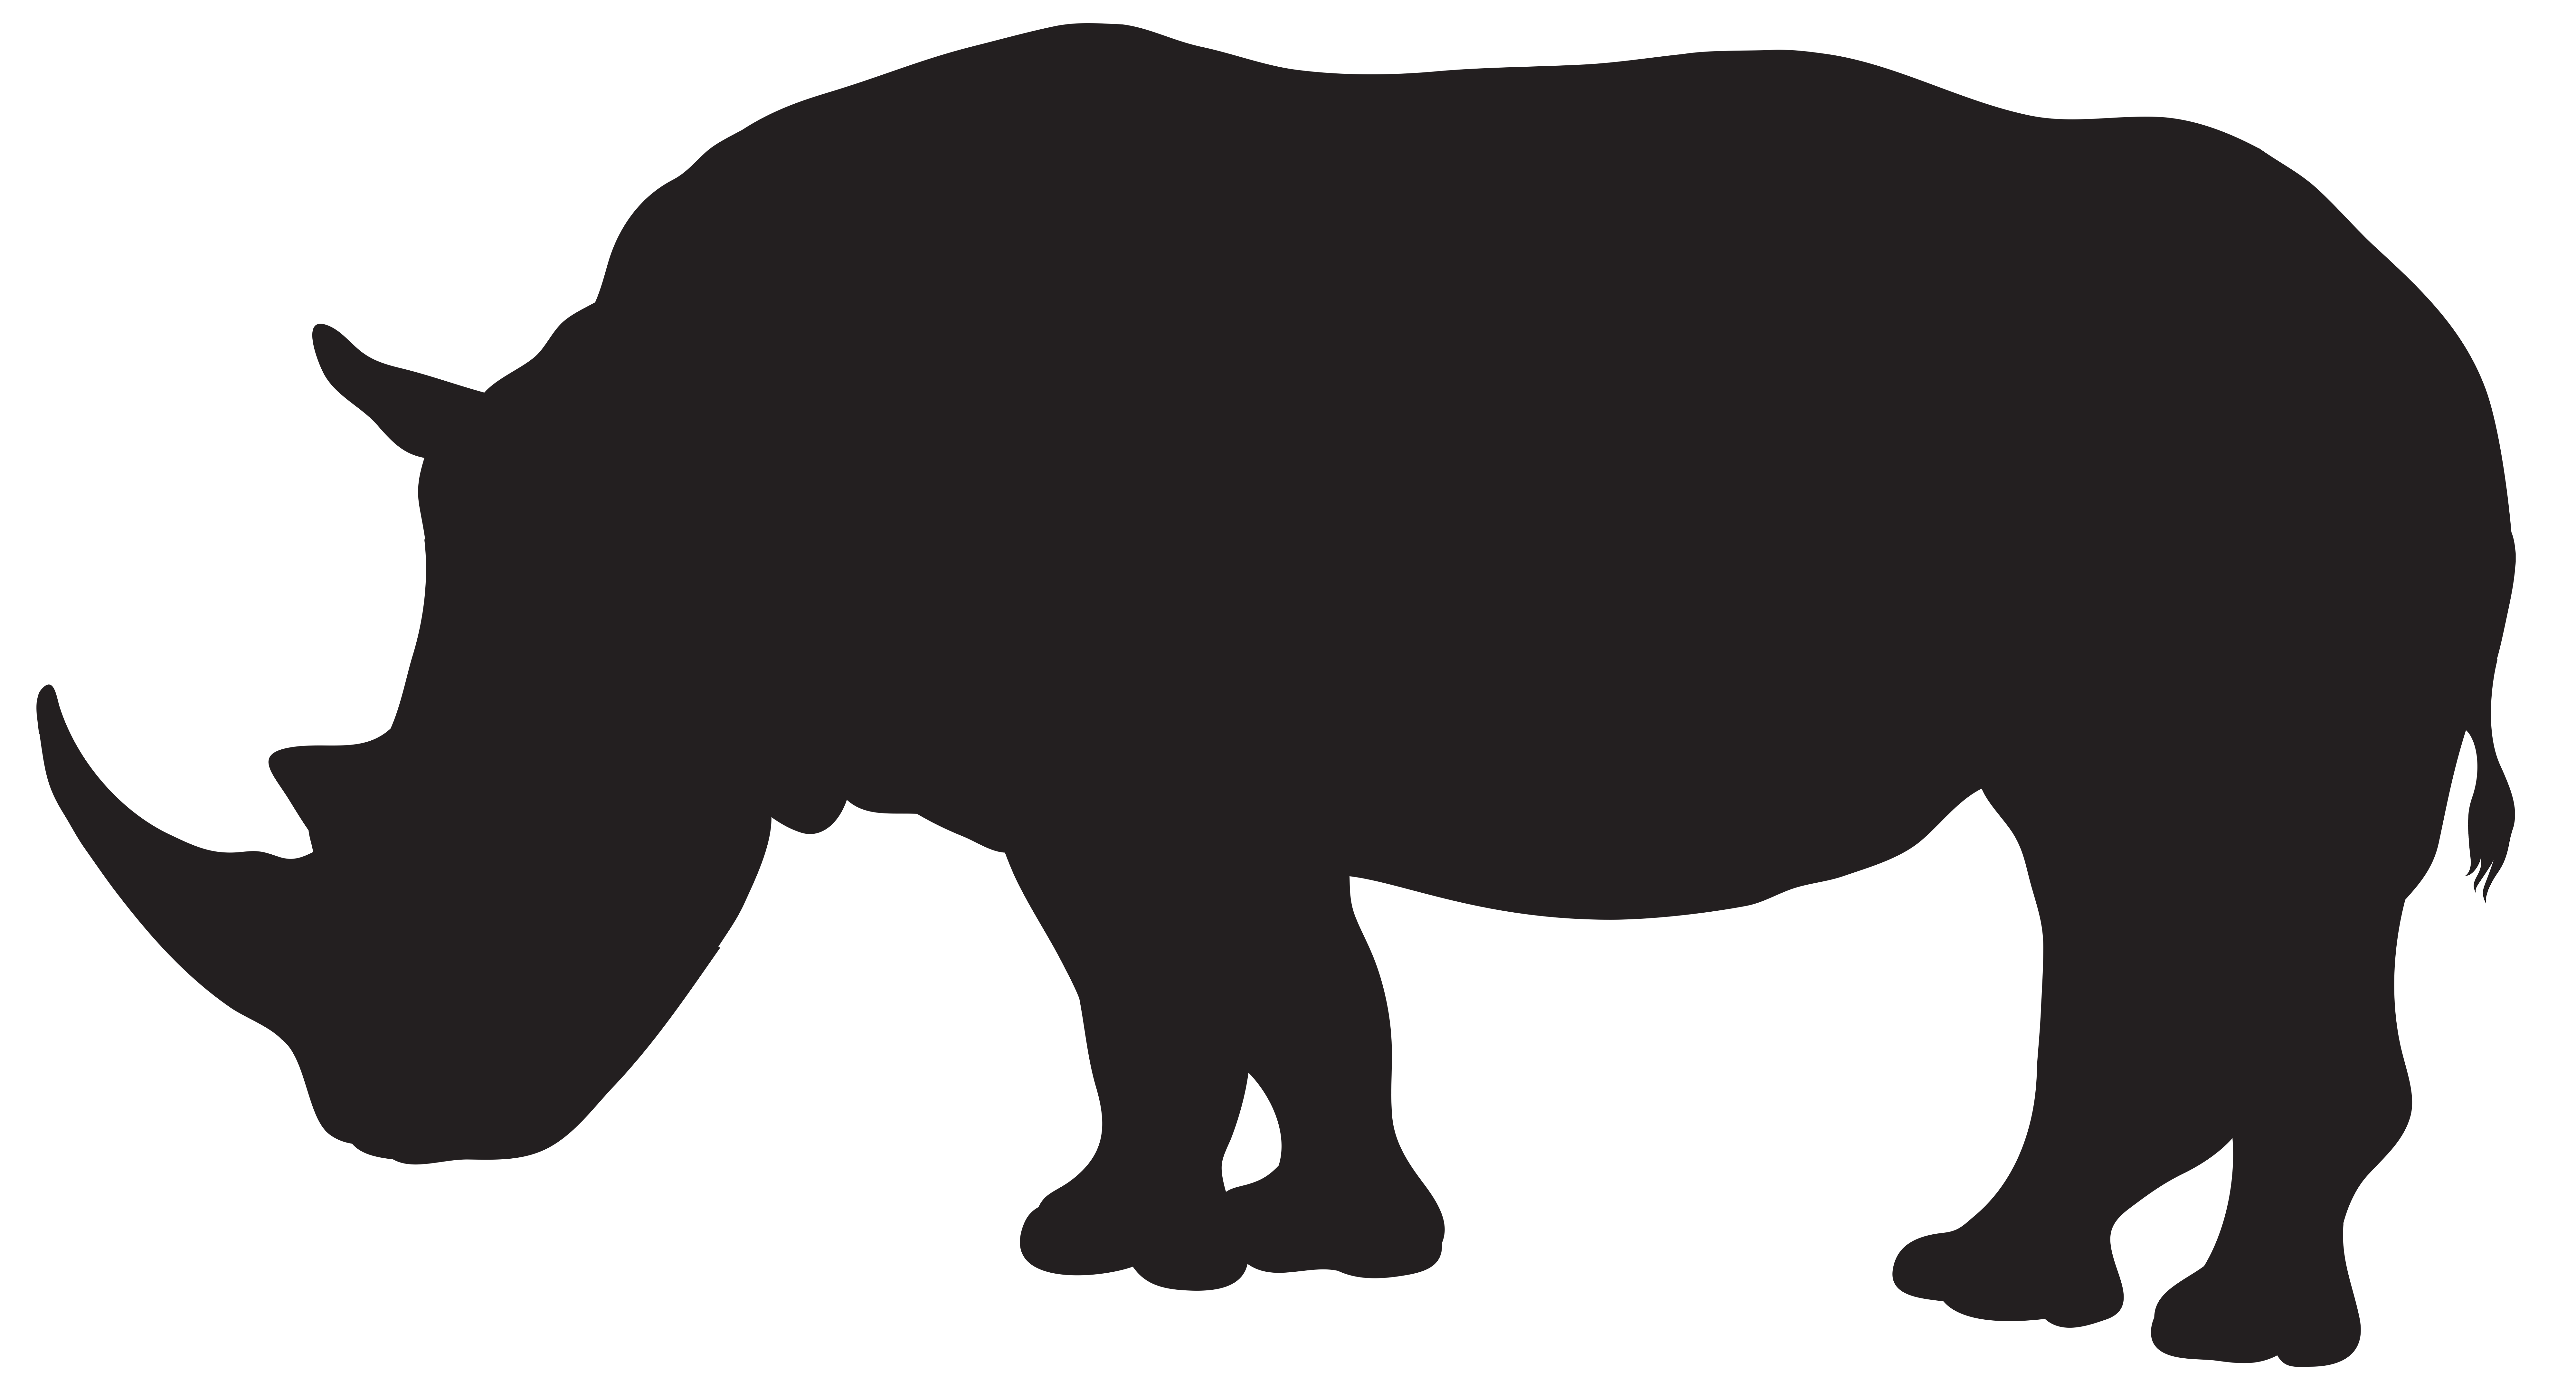 Rhino Silhouette PNG Transparent Clip Art Image.